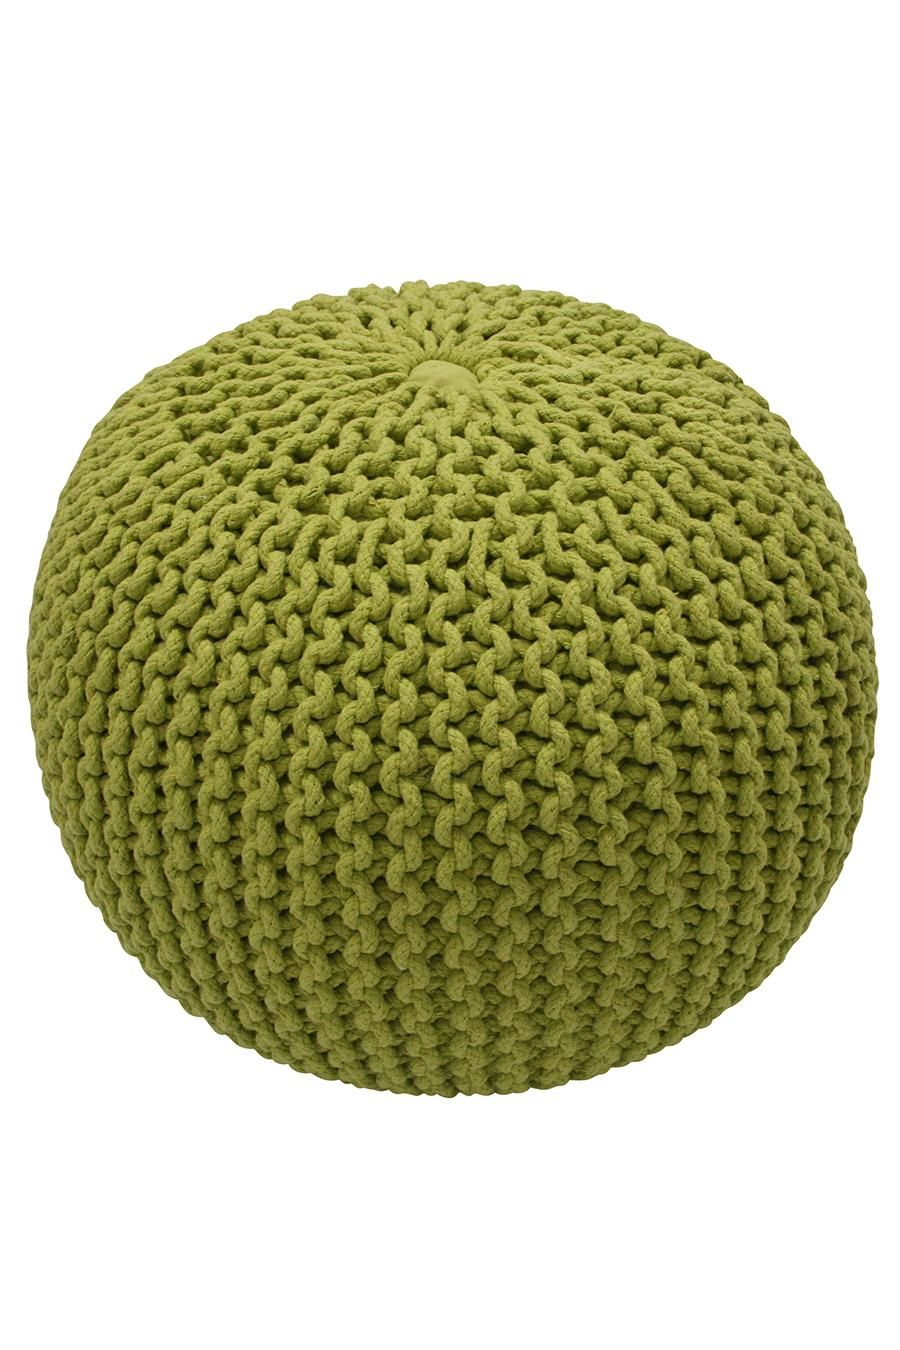 Poufs For Sale Delectable Nuloom Knitted Pouf Have Wanted This Forever For Lu's Room And Now Decorating Design